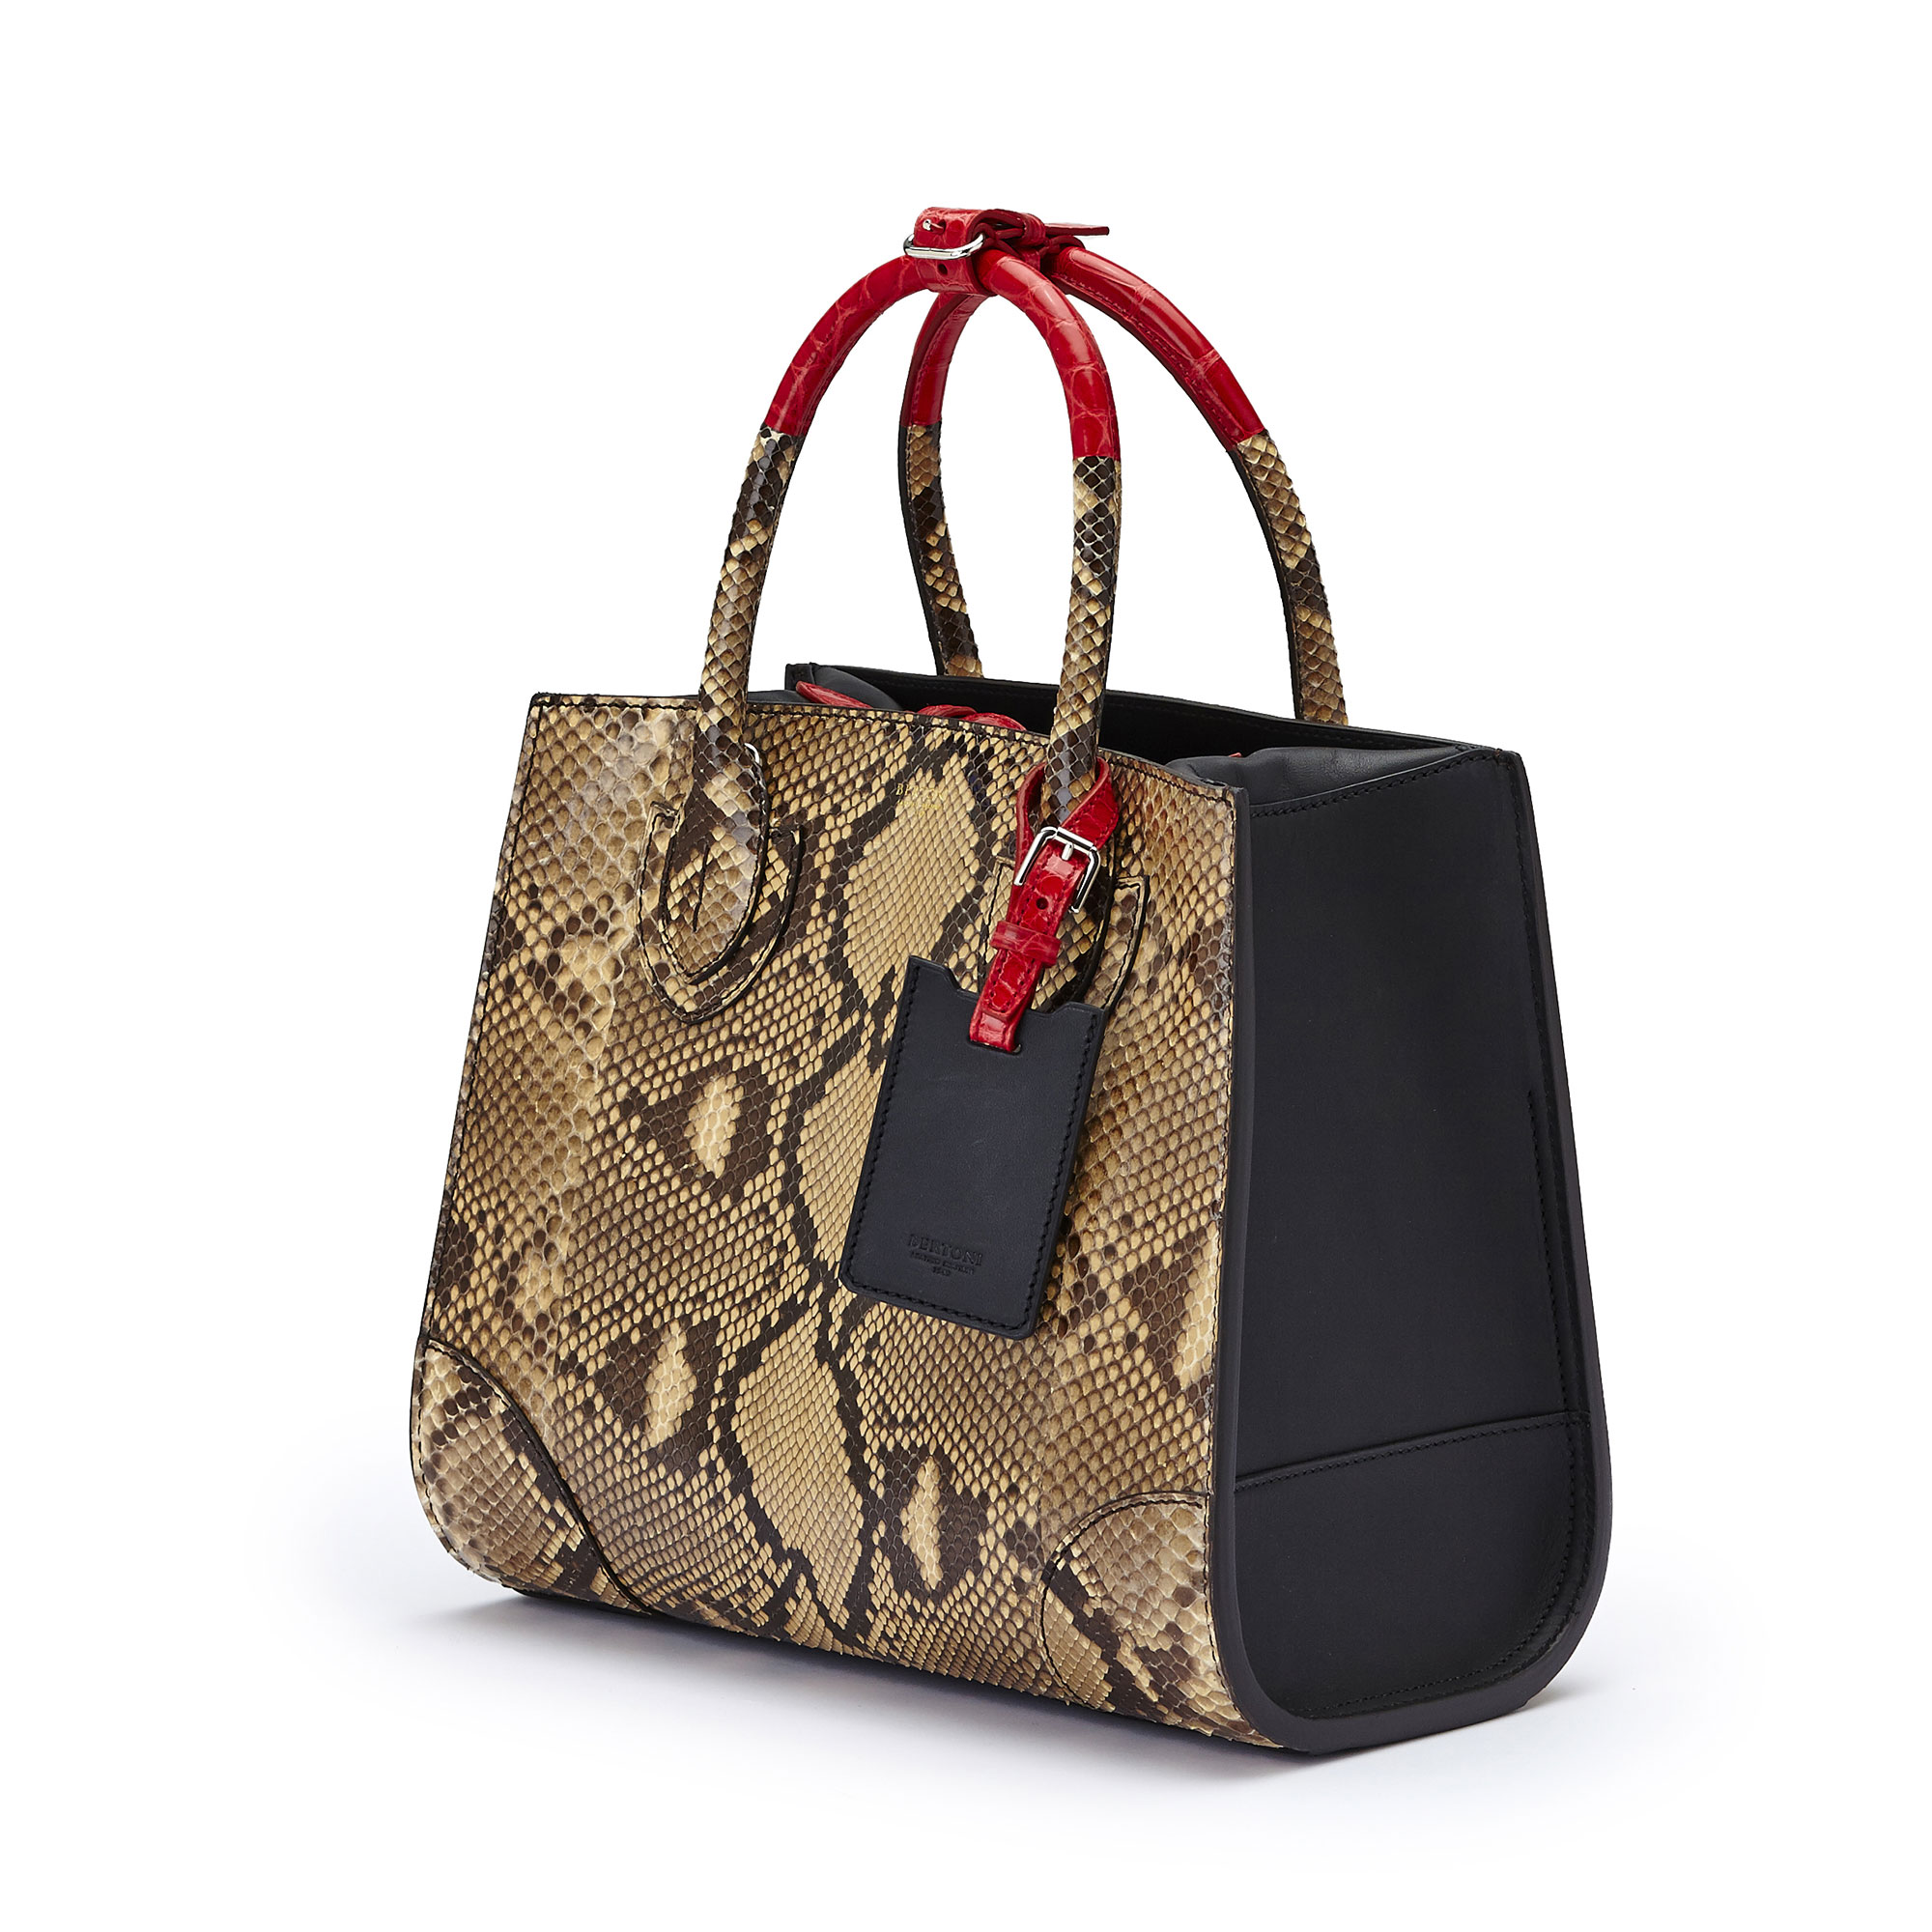 The black and red alligator, french calf, python Darcy bag by Bertoni 1949 03